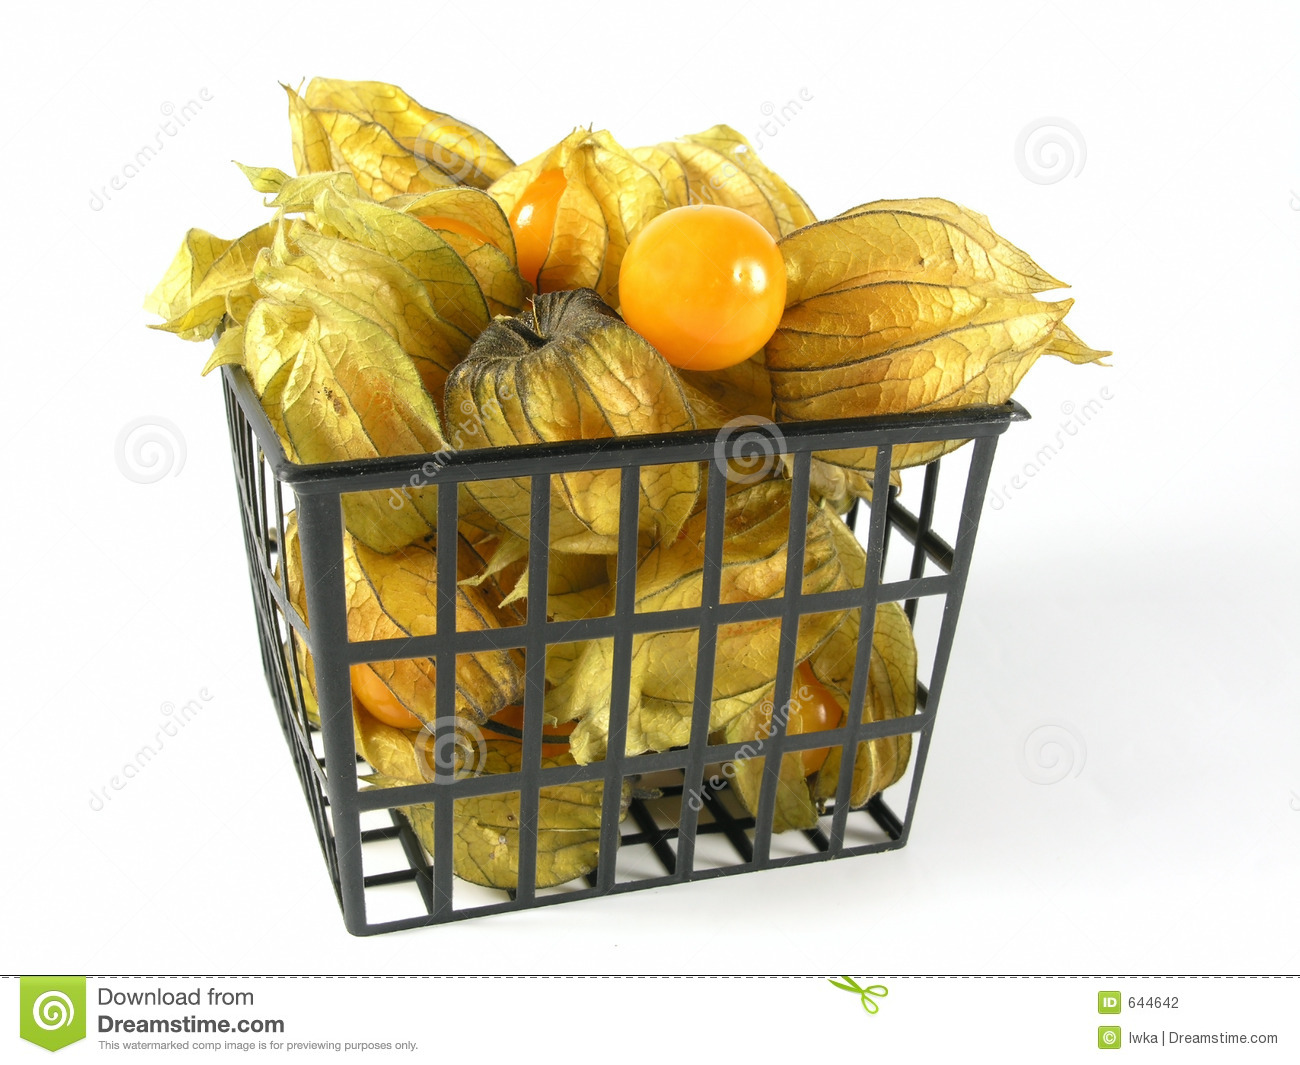 Download Physalis стоковое фото. изображение насчитывающей плодоовощи - 644642